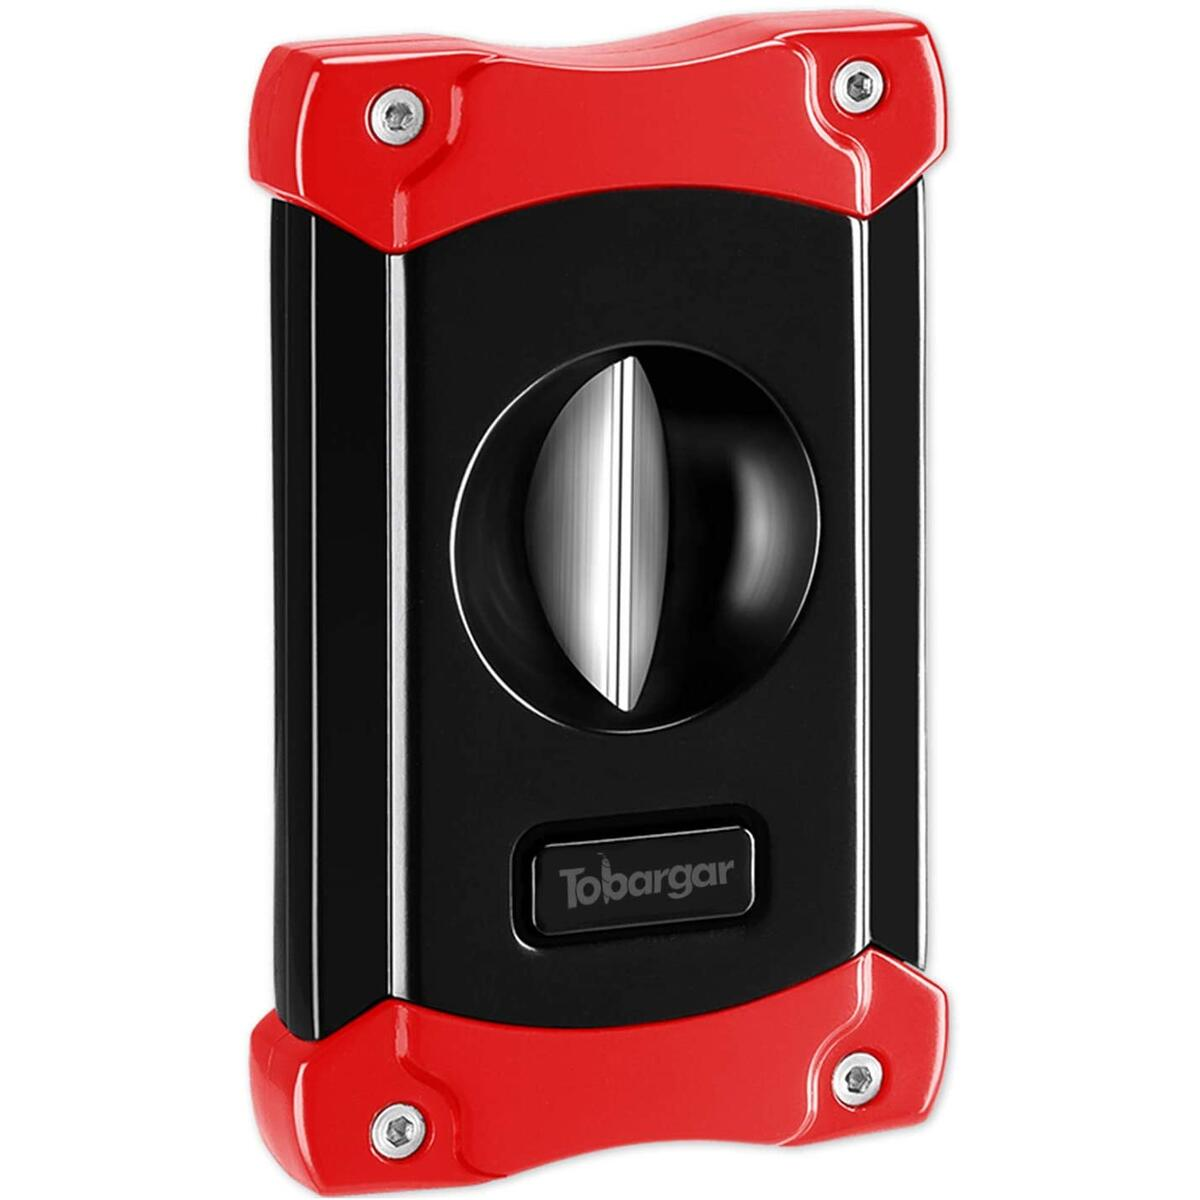 Tobargar Cigar Cutter, Stainless Steel V Cutter Cigar Retro Style with Exquisite Box (red)